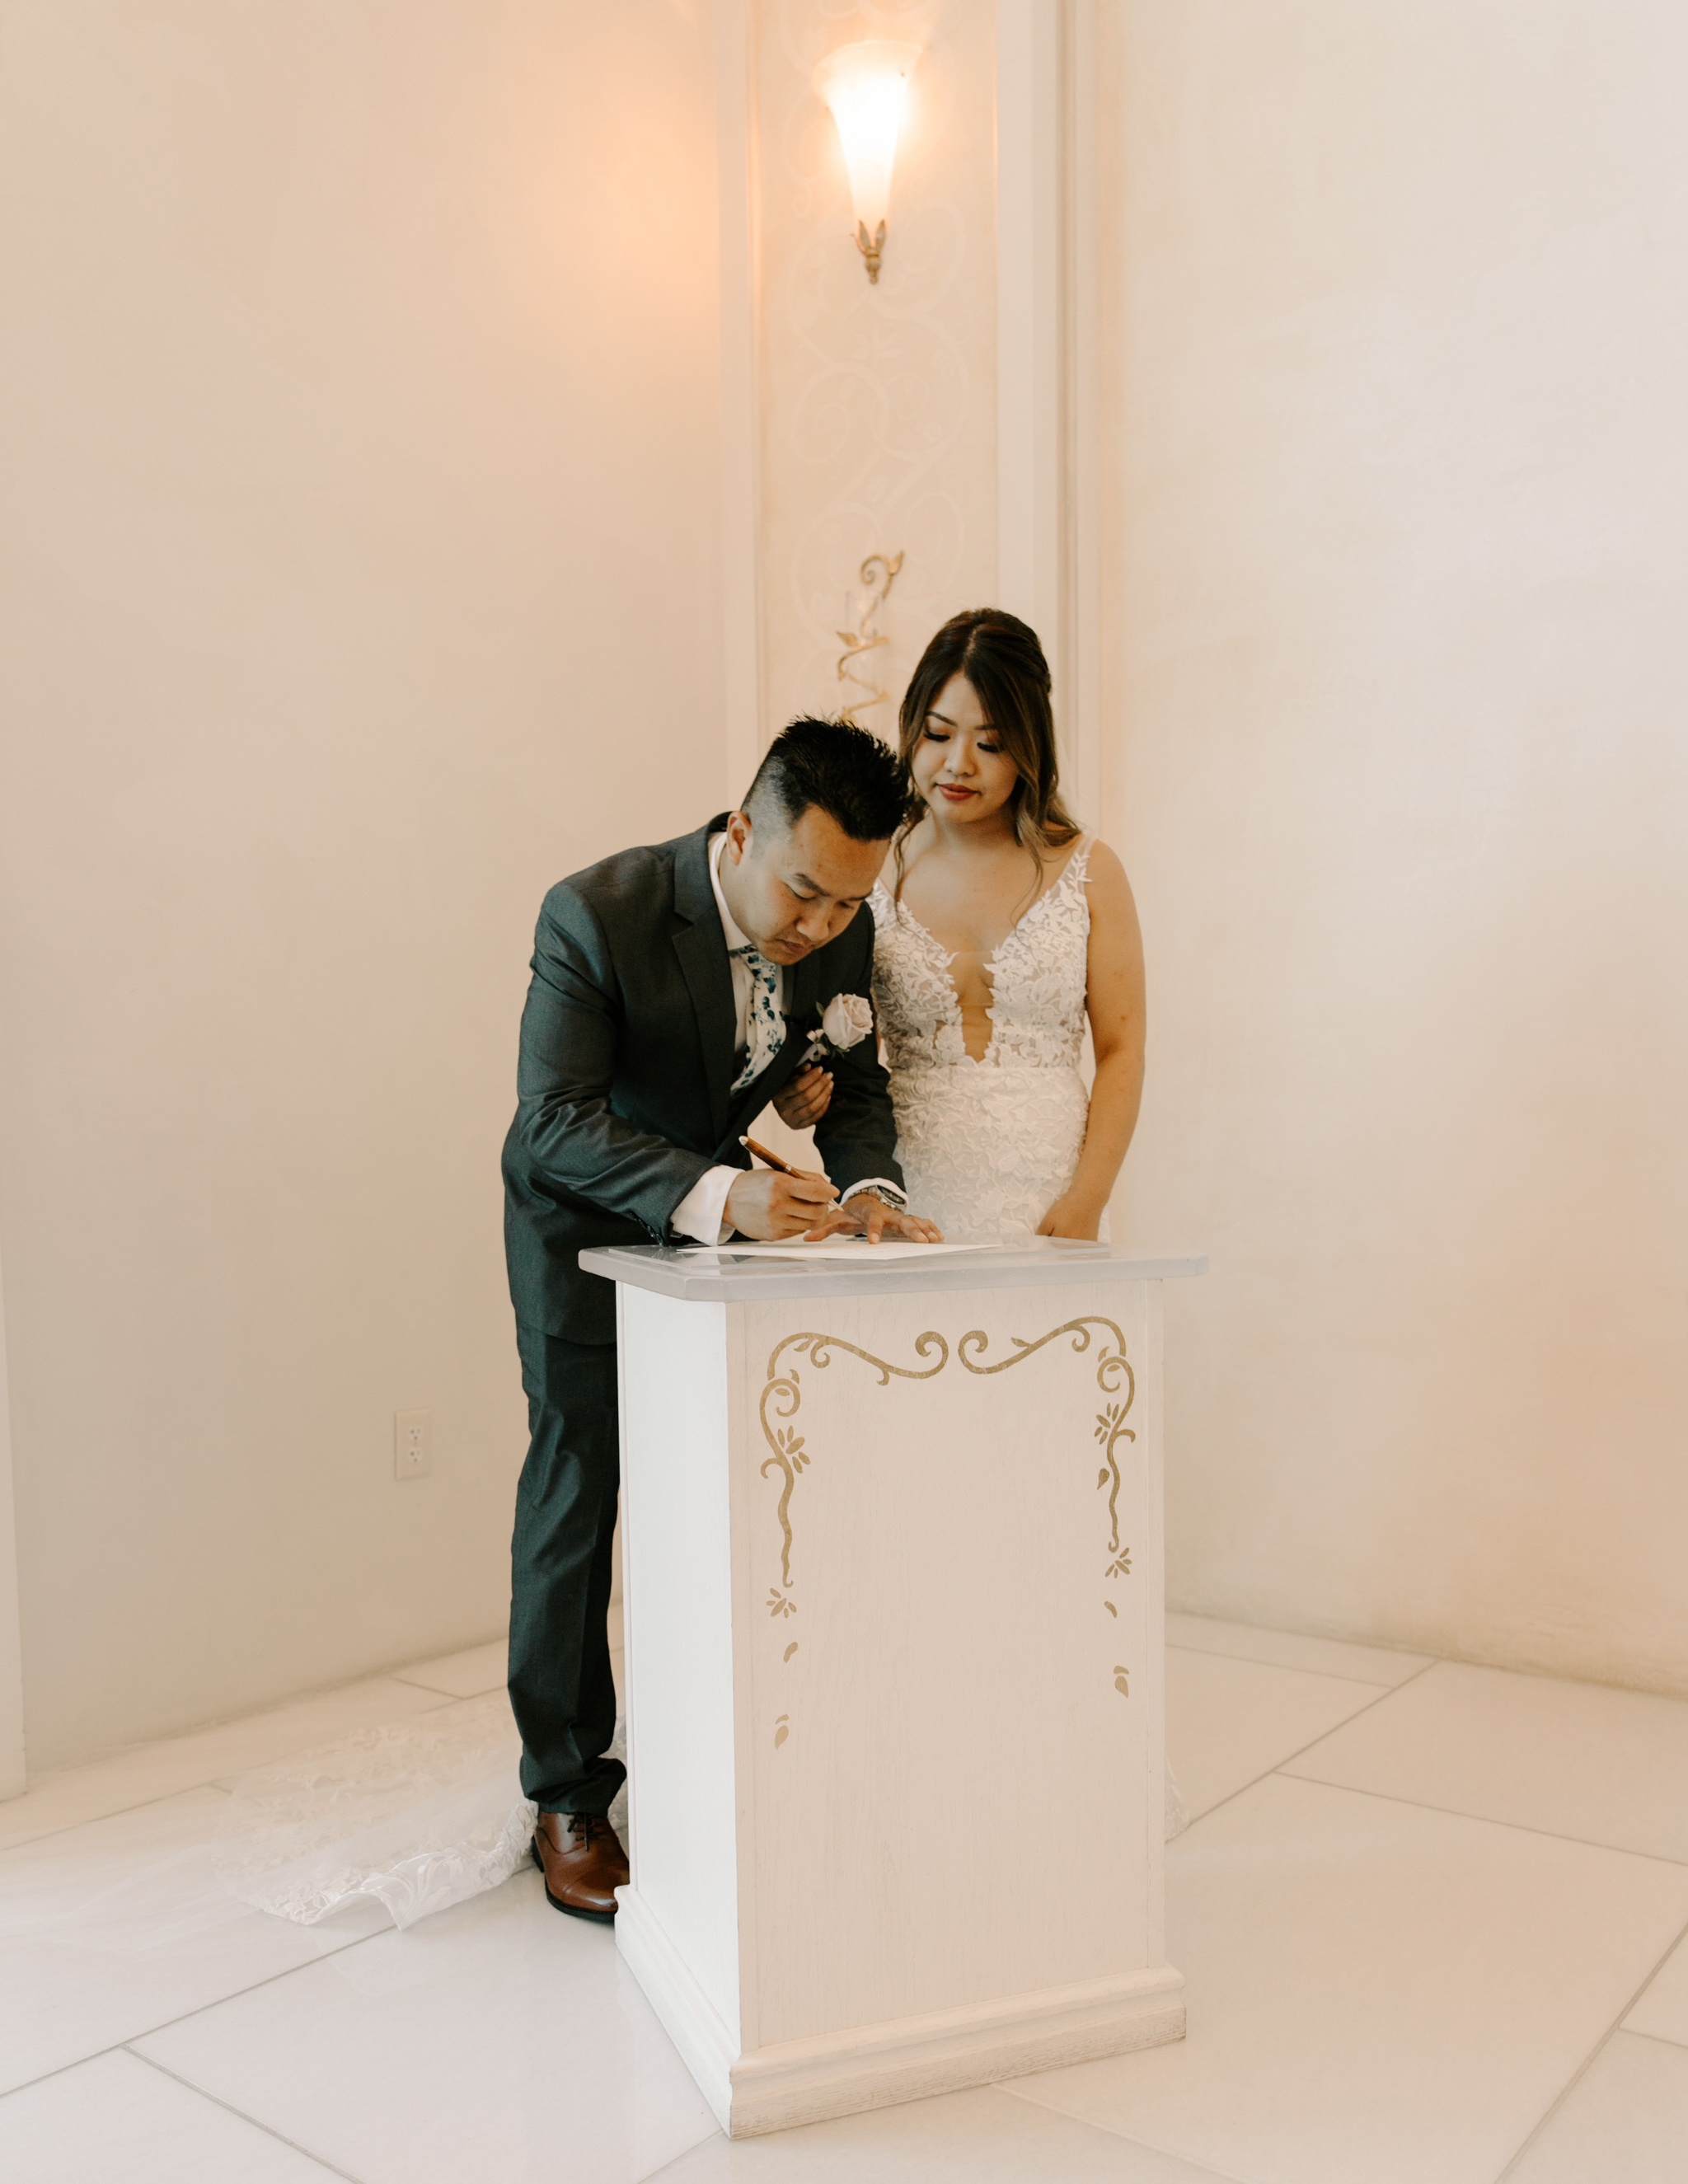 Signing the marriage certificate photo - 53 By The Sea Hawaii Wedding Naupaka Chapel By Oahu Wedding Photographer Desiree Leilani